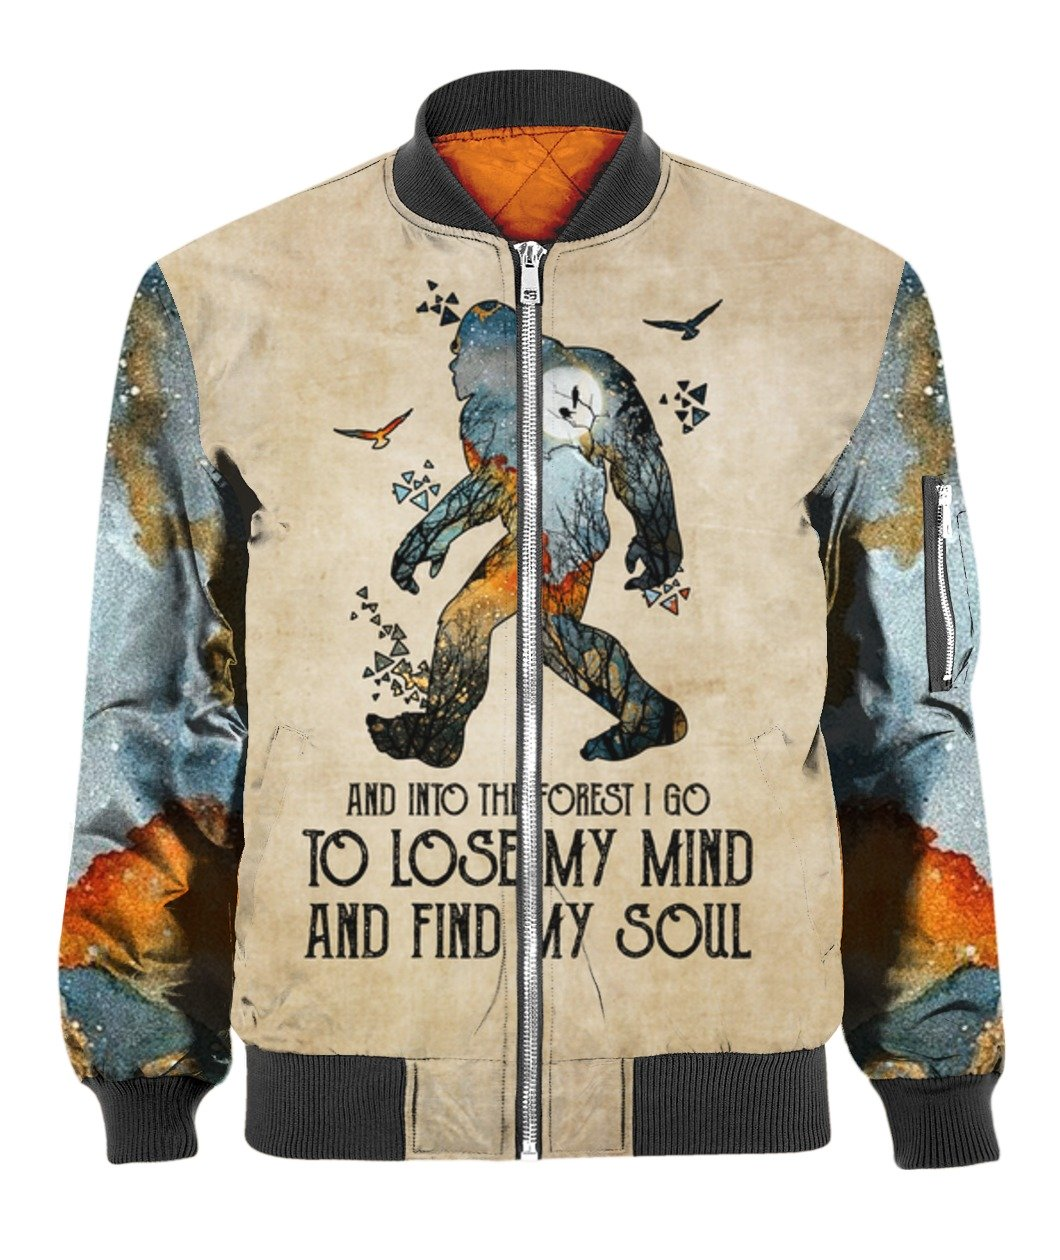 Bigfoot and into the forest i go to lose my mind camping full over print bomber